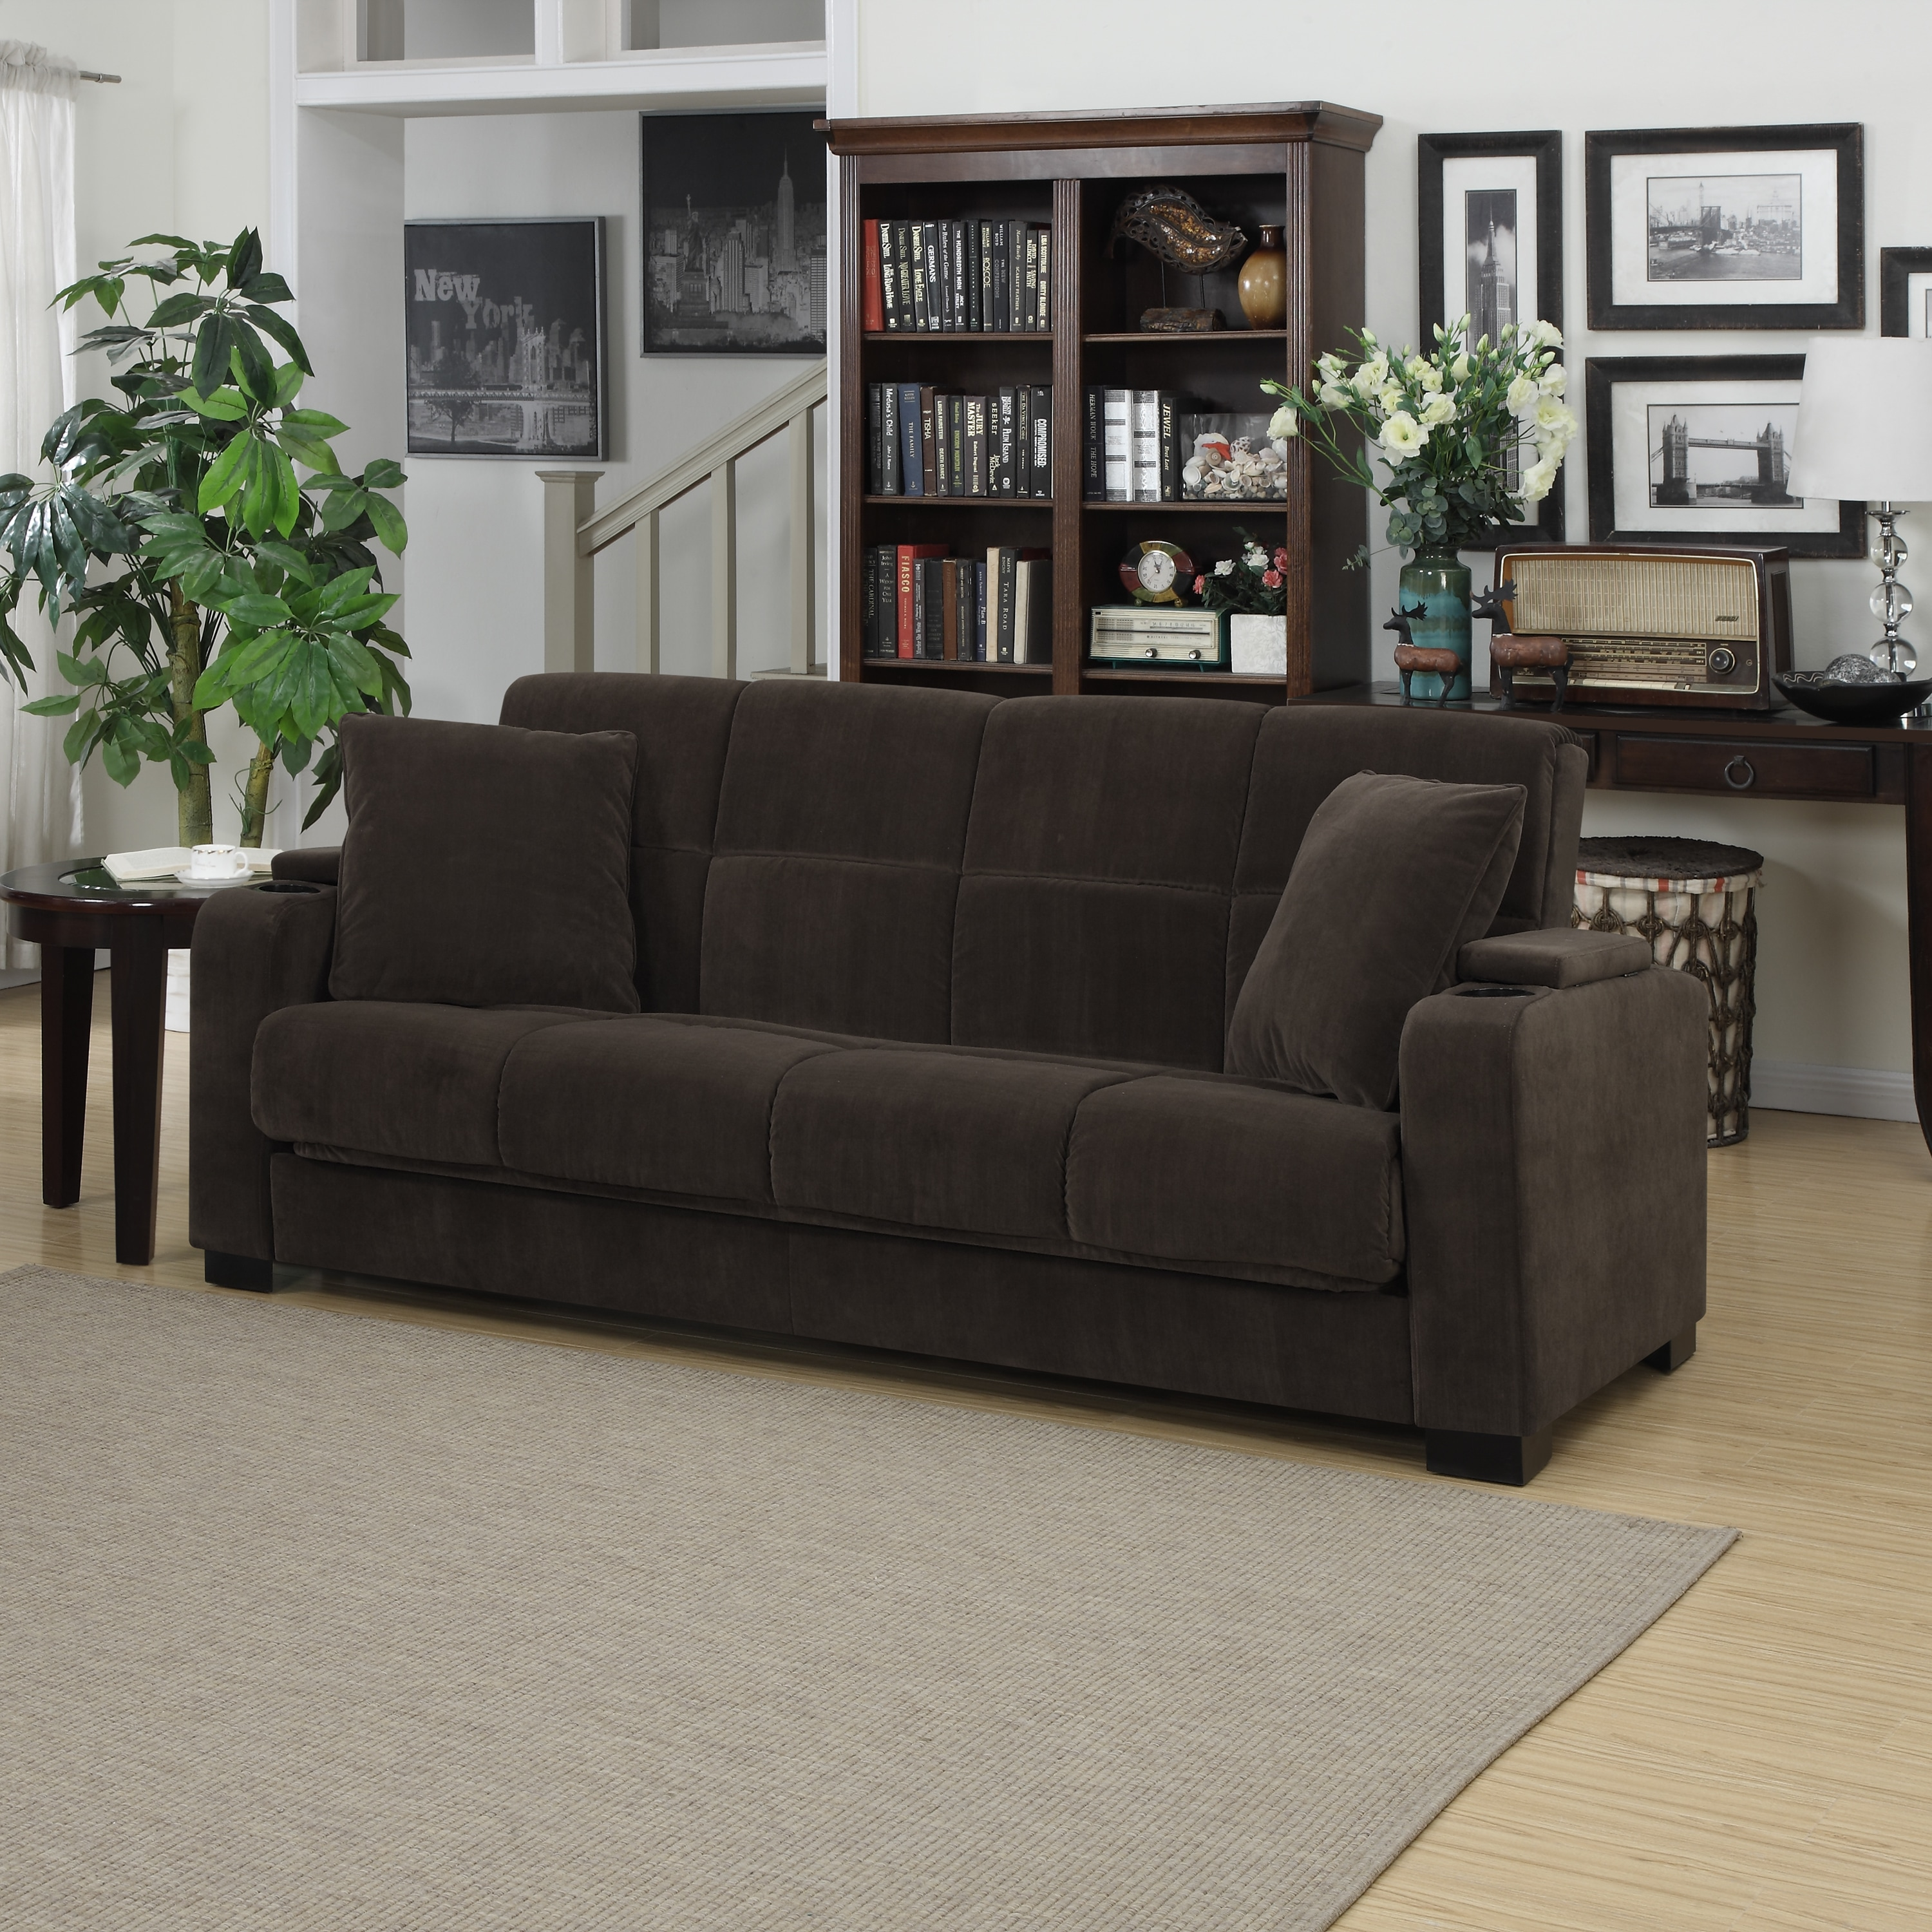 Shop Clay Alder Home Klingle Chocolate Brown Velvet Convert A Couch Storage  Arm Futon Sofa Sleeper   On Sale   Free Shipping Today   Overstock.com   ...